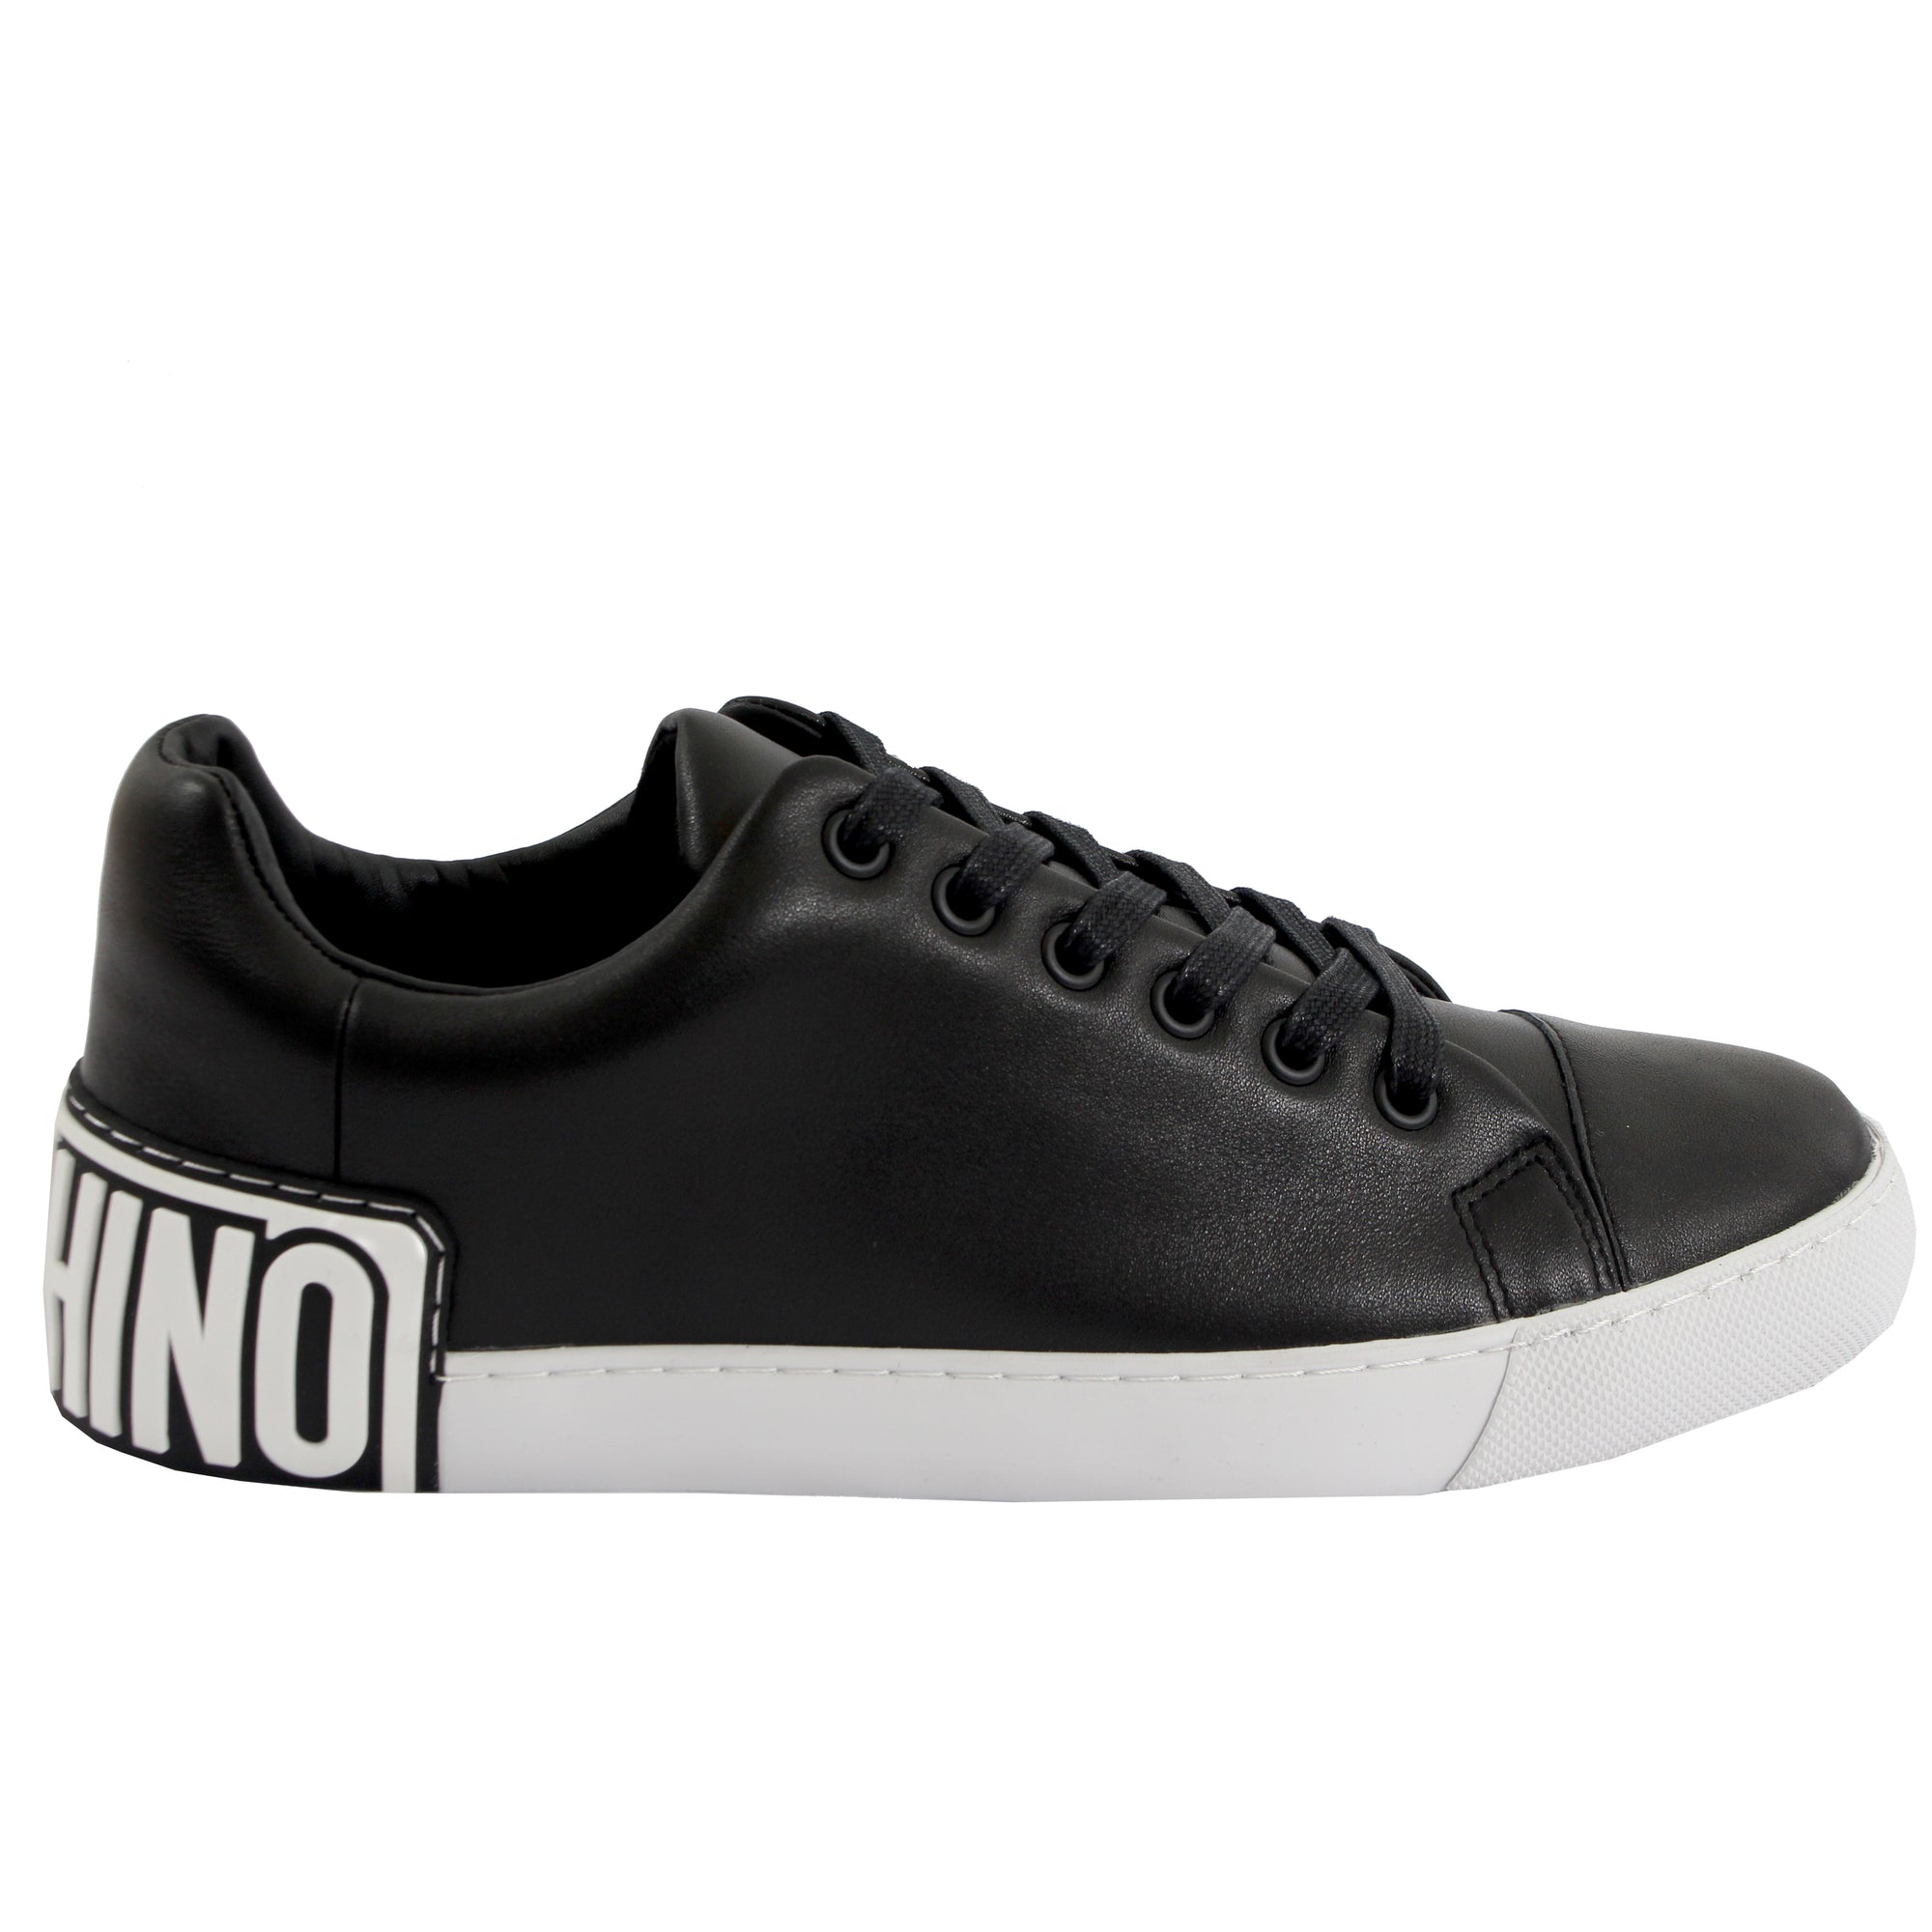 Moschino Logo Sneakers - Black